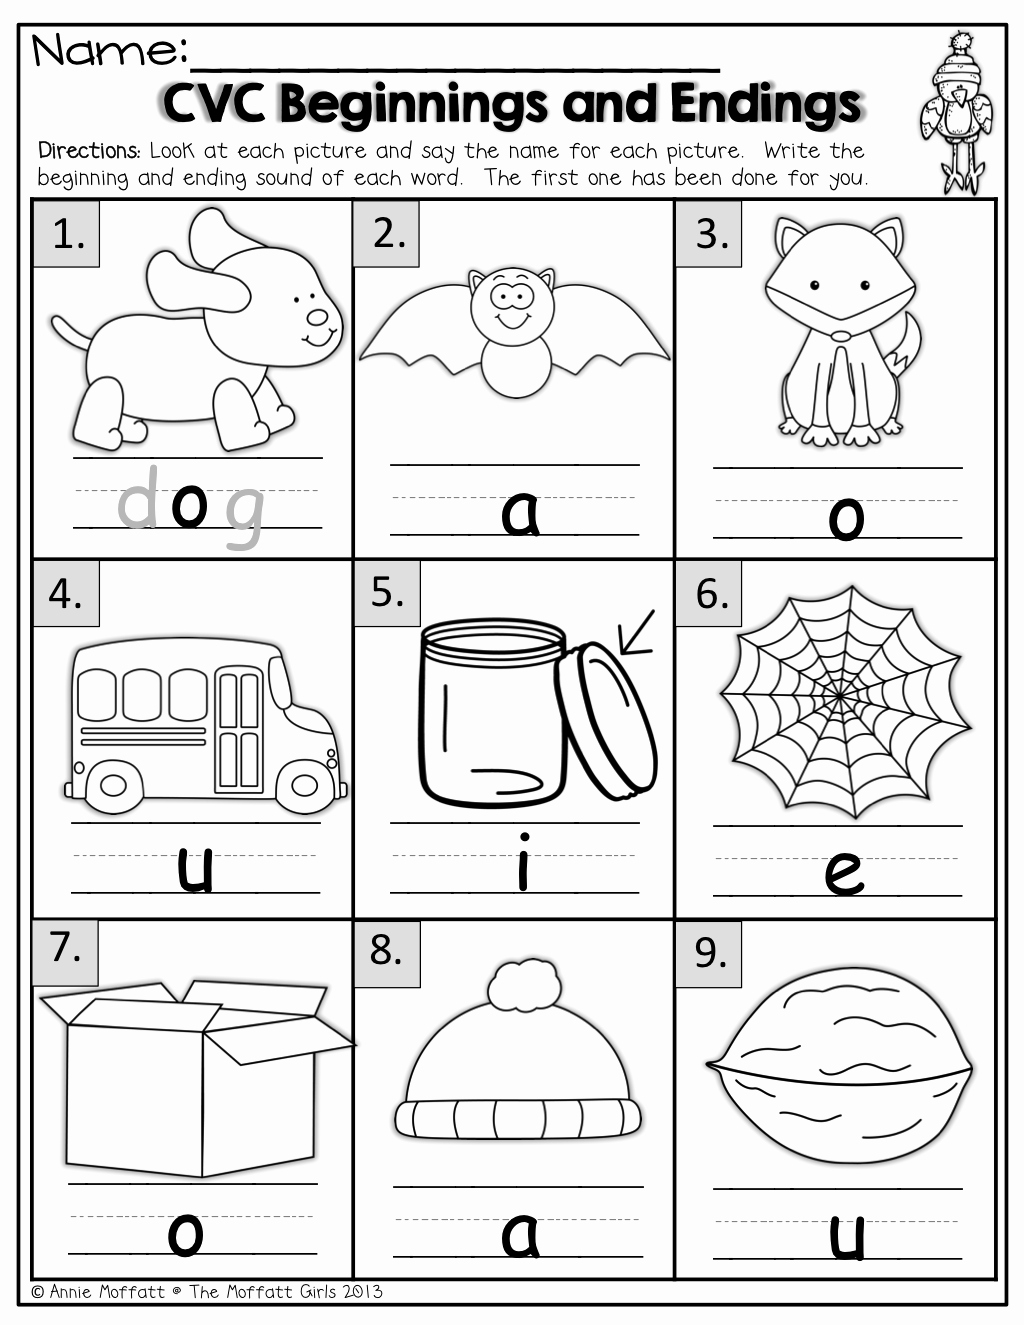 Cvc Worksheets for Kinder Beautiful Blending Cvc Words Worksheets for Kindergarten Best